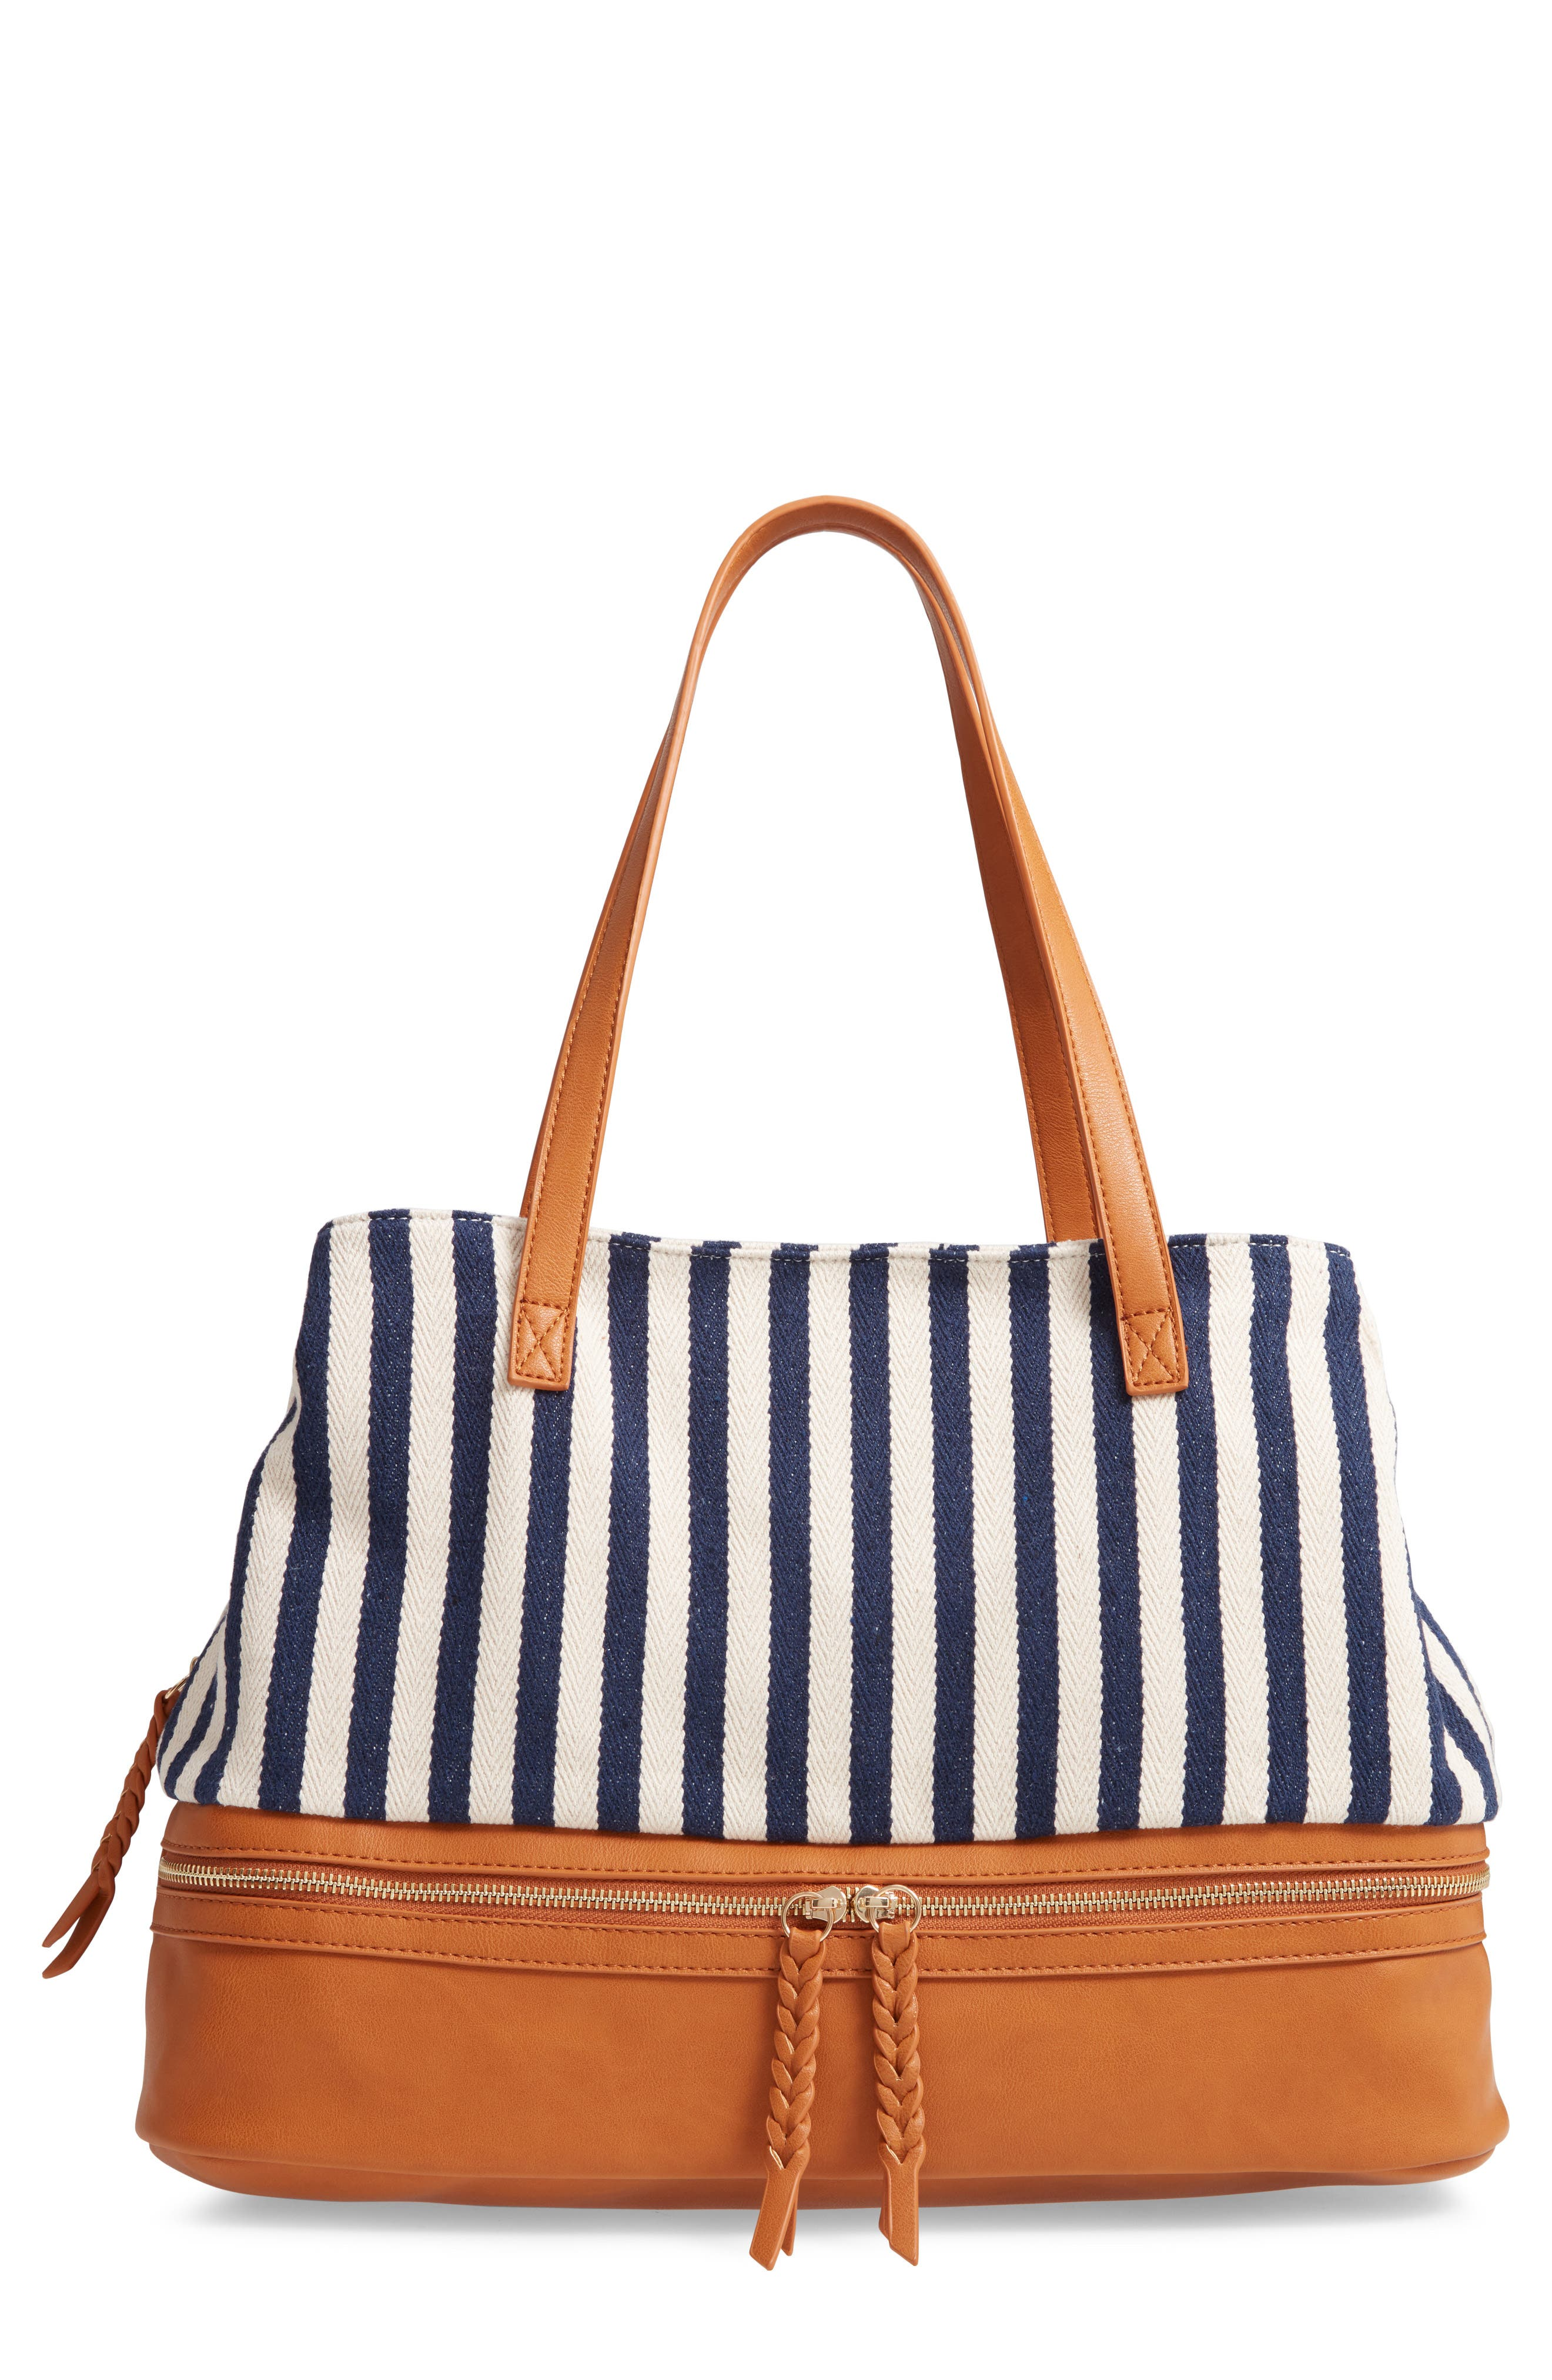 STREET LEVEL, Faux Leather Trim Weekend Bag with Shoe Base, Main thumbnail 1, color, 400